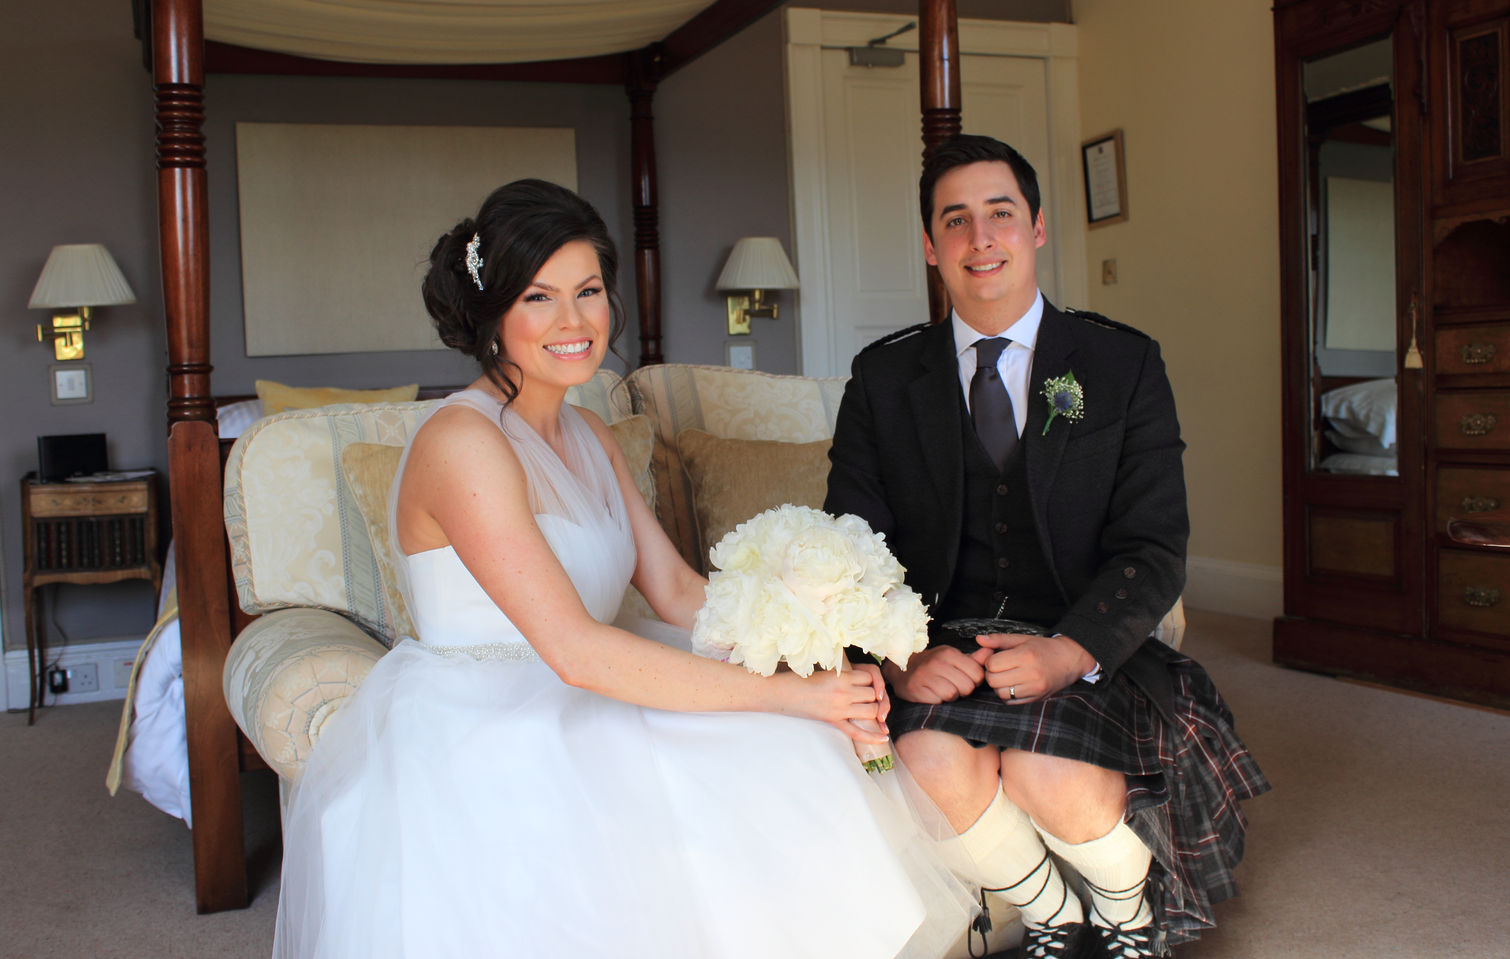 Natural, relaxed, fun wedding photography Aberdeen and surrounding areas